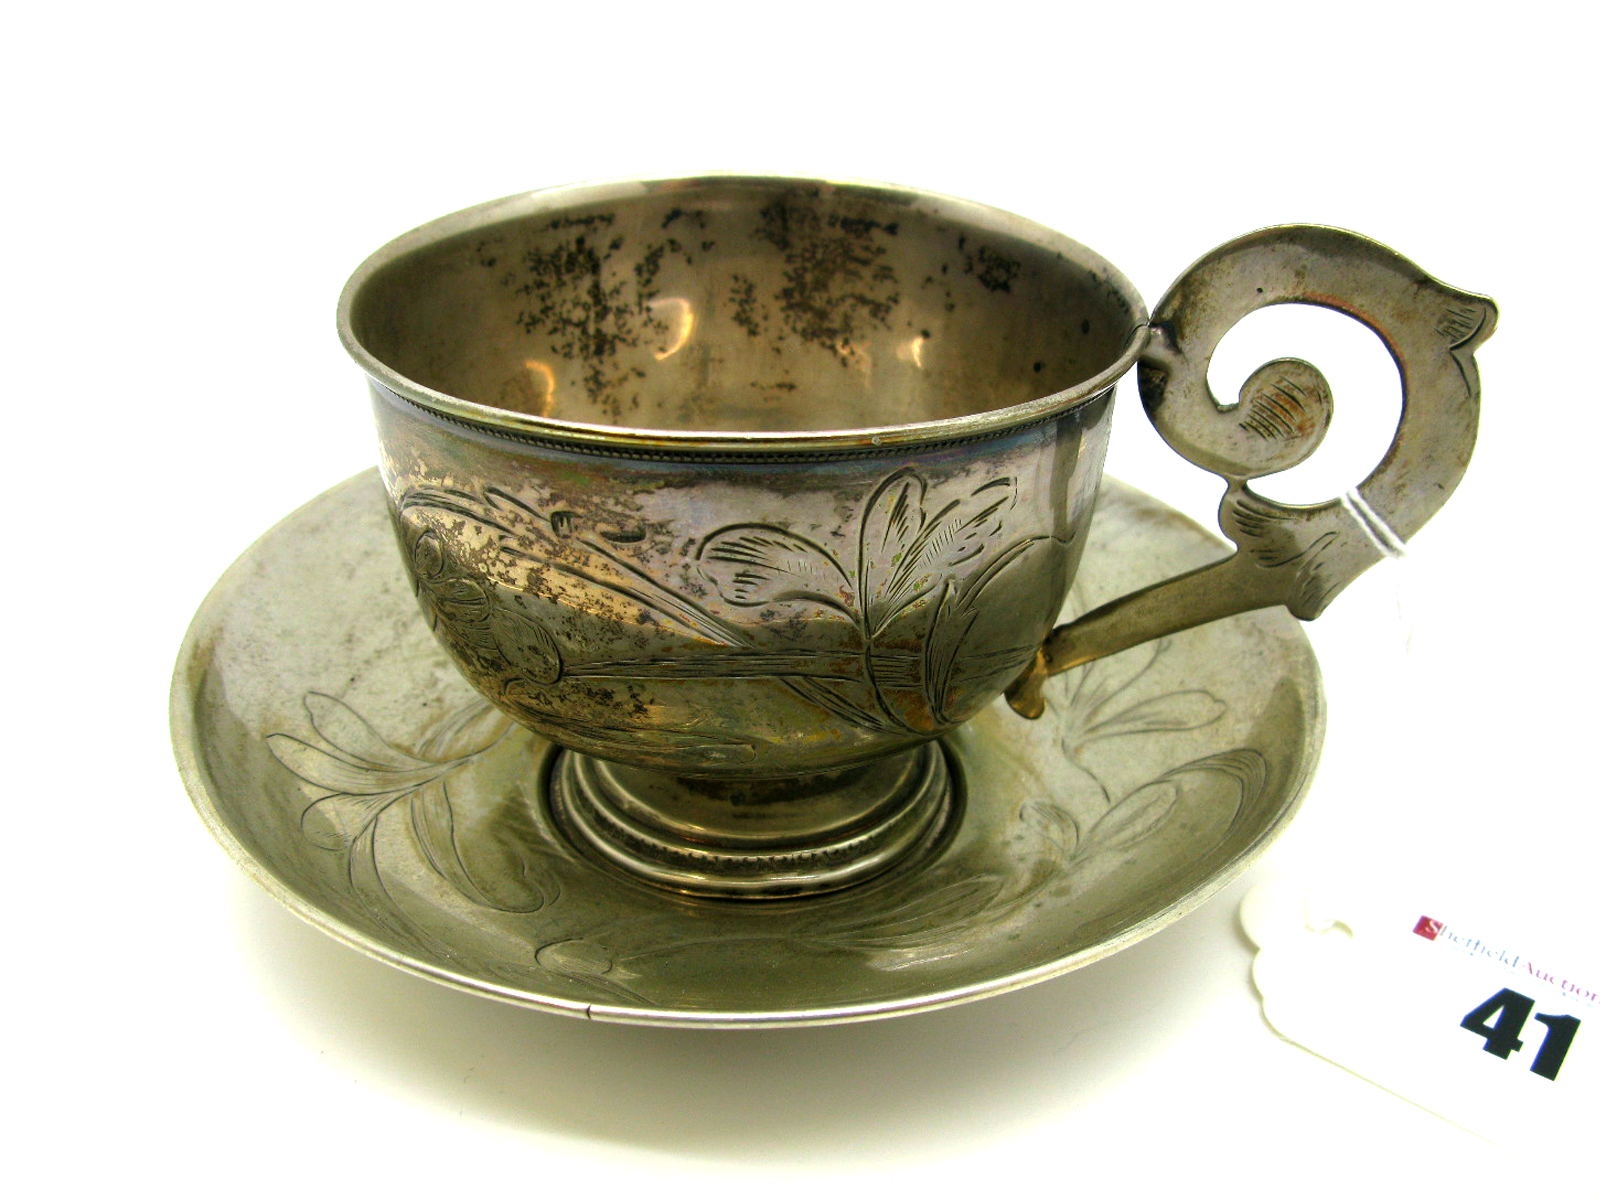 Lot 41 - A Russian Cup and Saucer, leaf engraved, the cup with flat scroll handle, the saucer 11.6cm